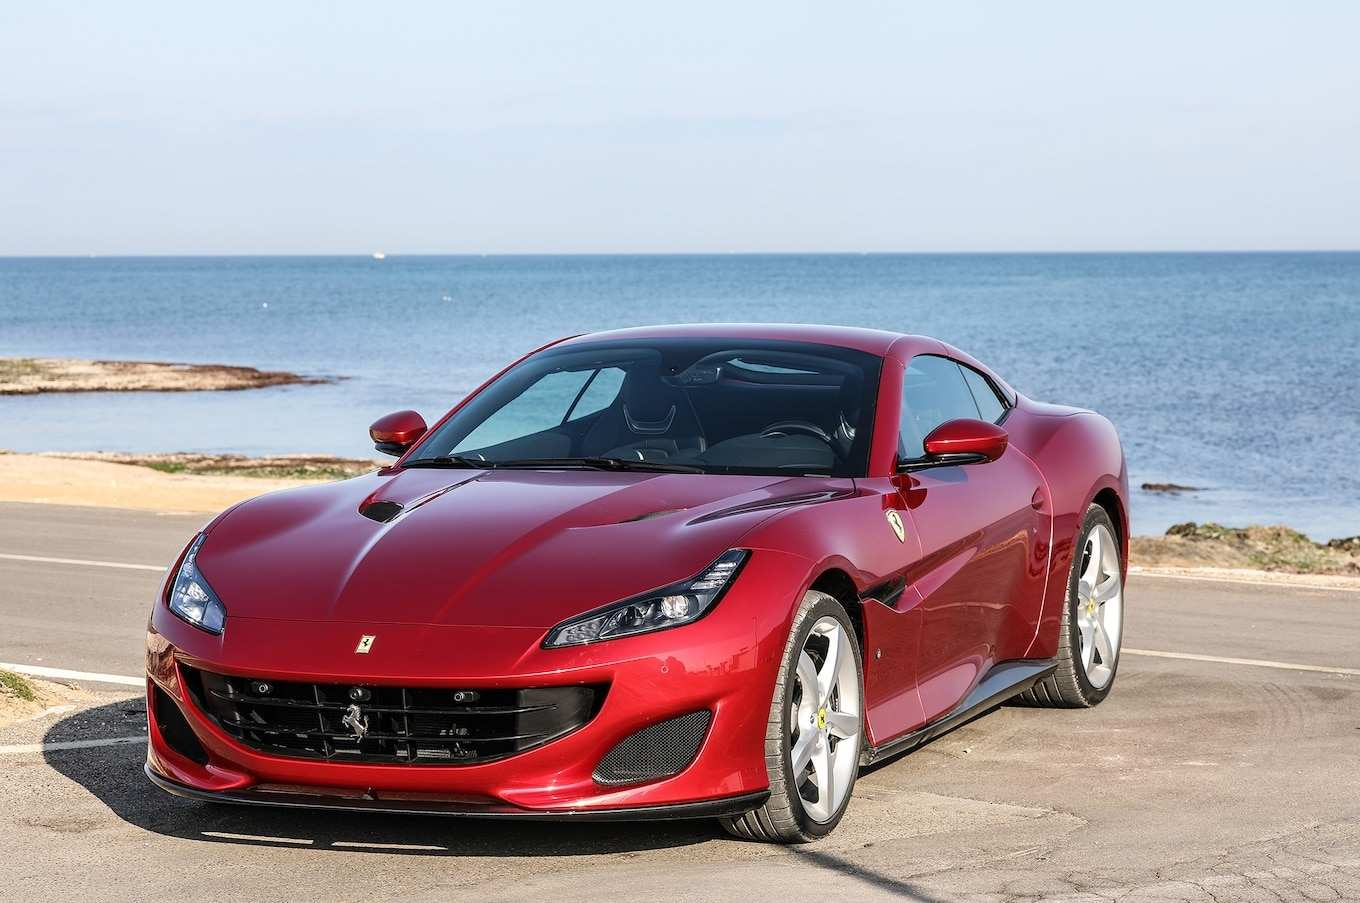 23 All New The Ferrari In Uscita 2019 Price Photos by The Ferrari In Uscita 2019 Price